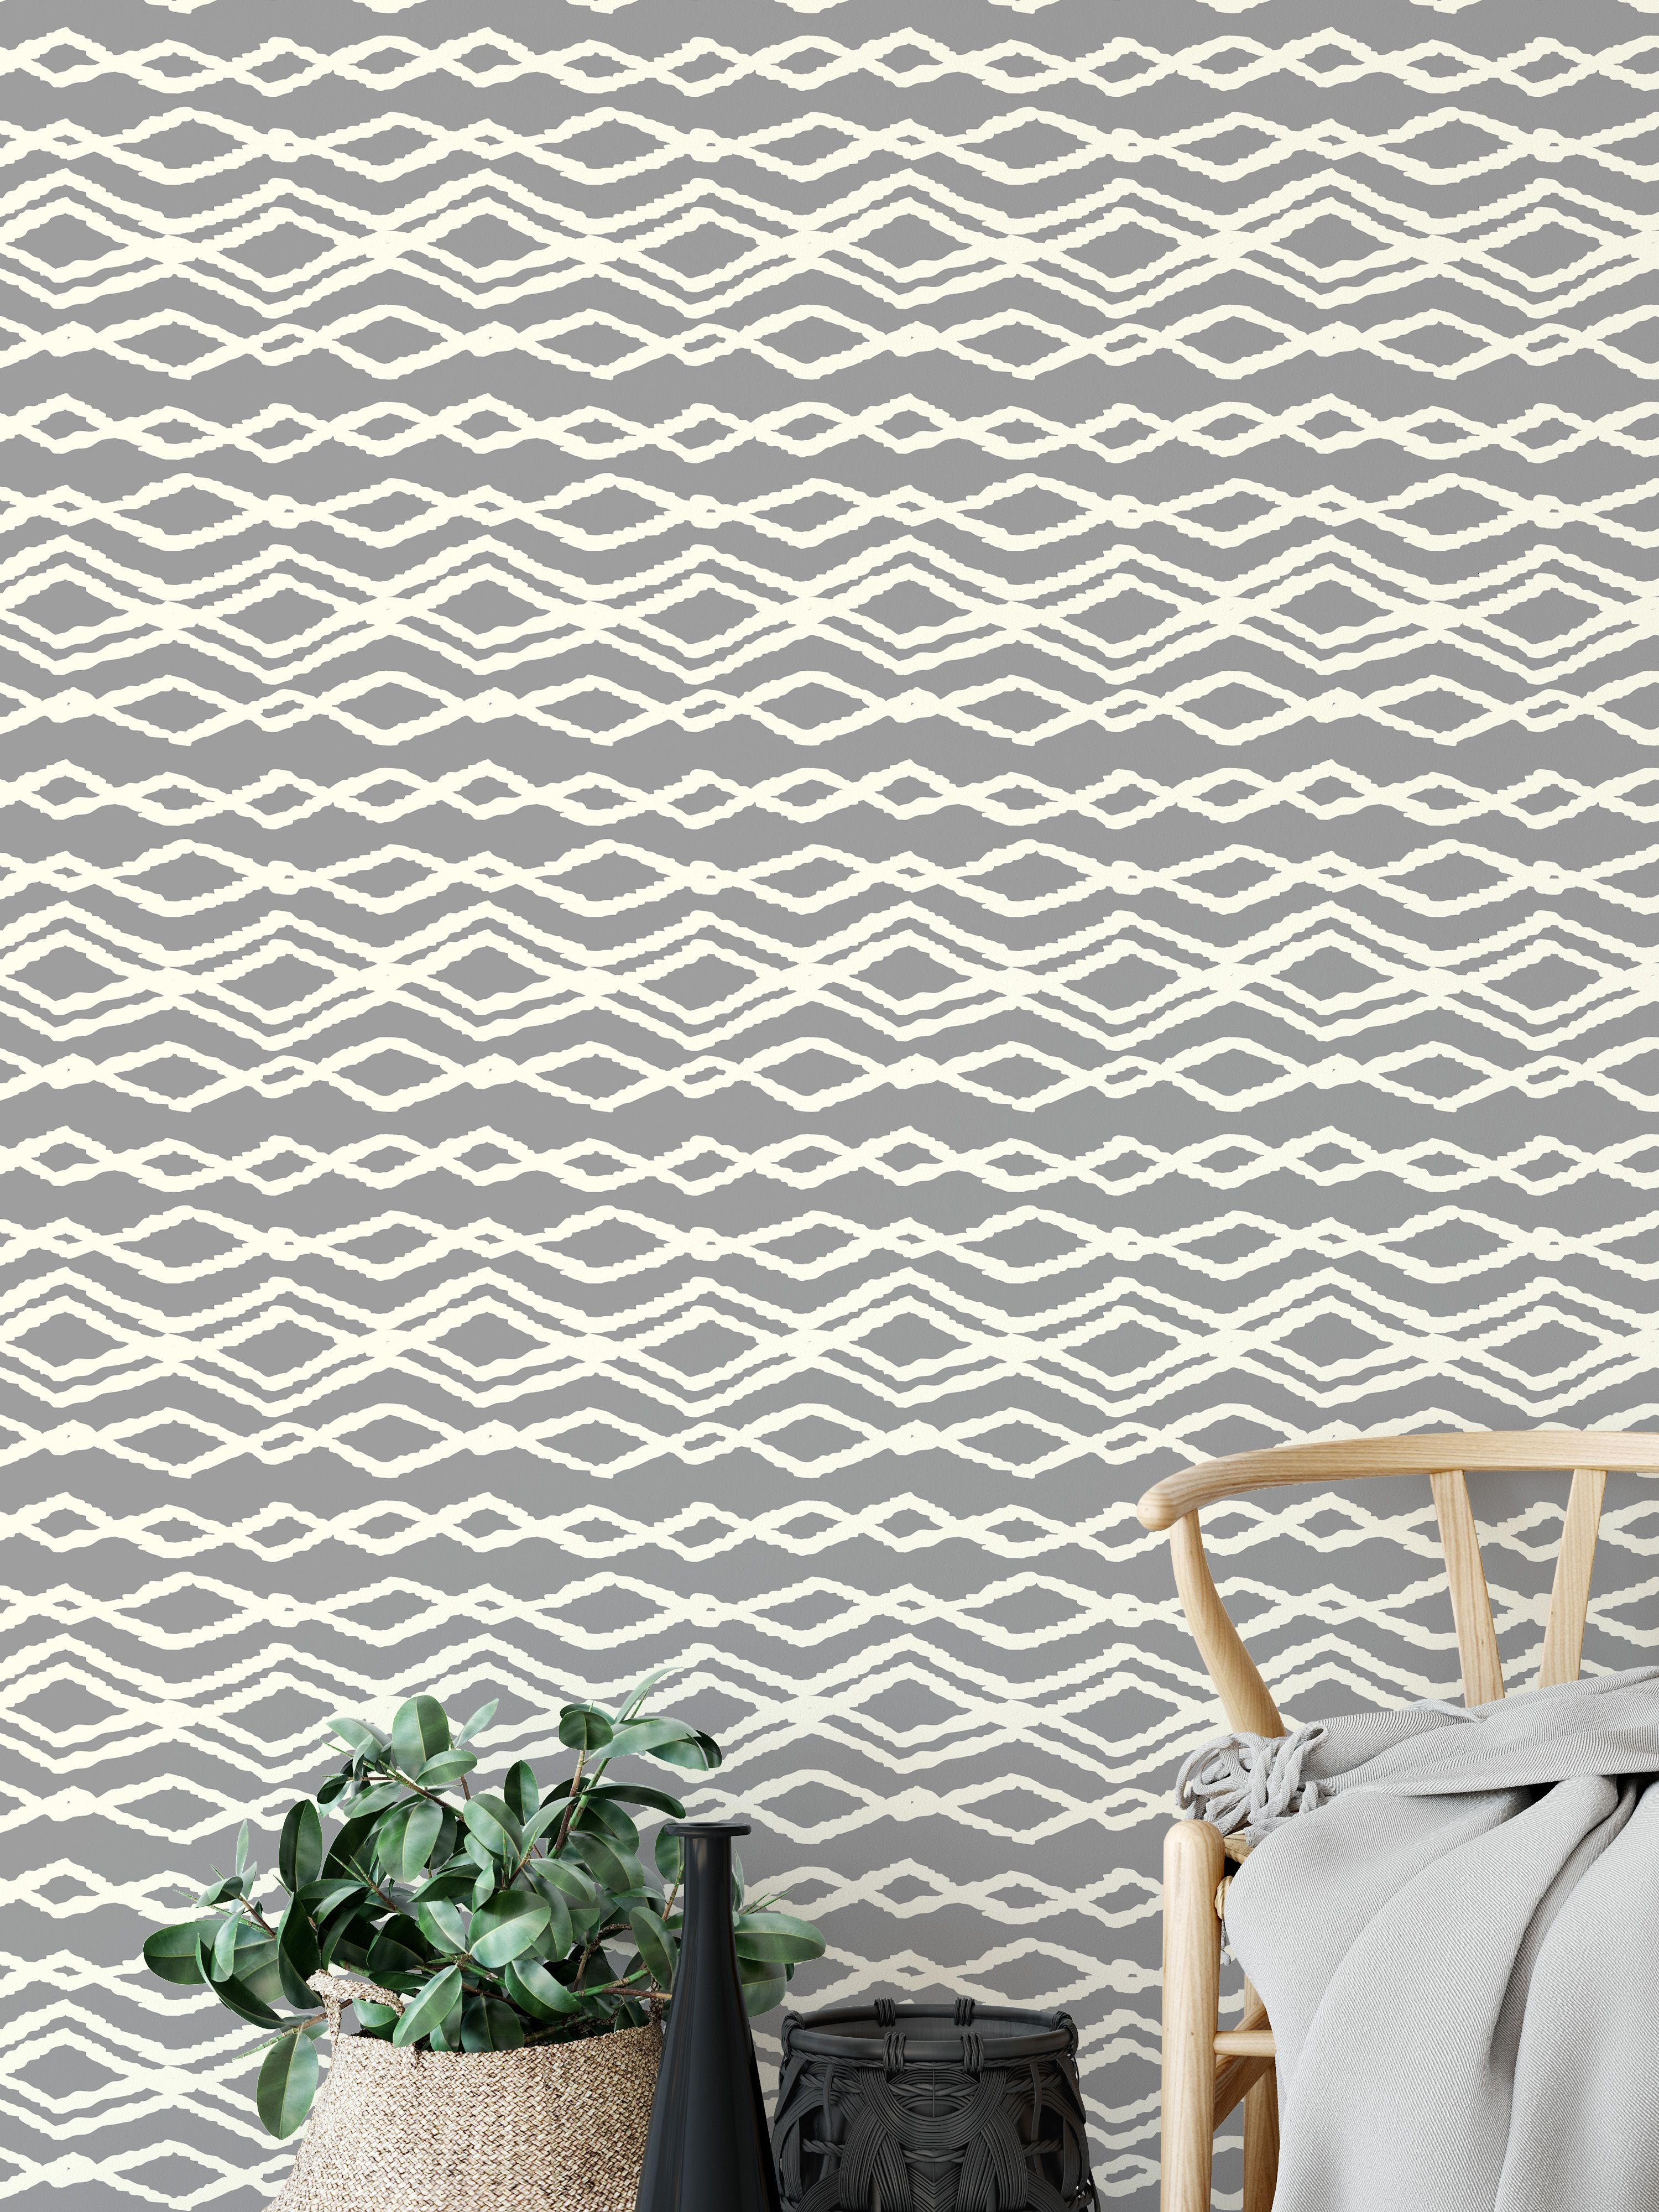 Braid How To Install Wallpaper Sharpie Wall Wall